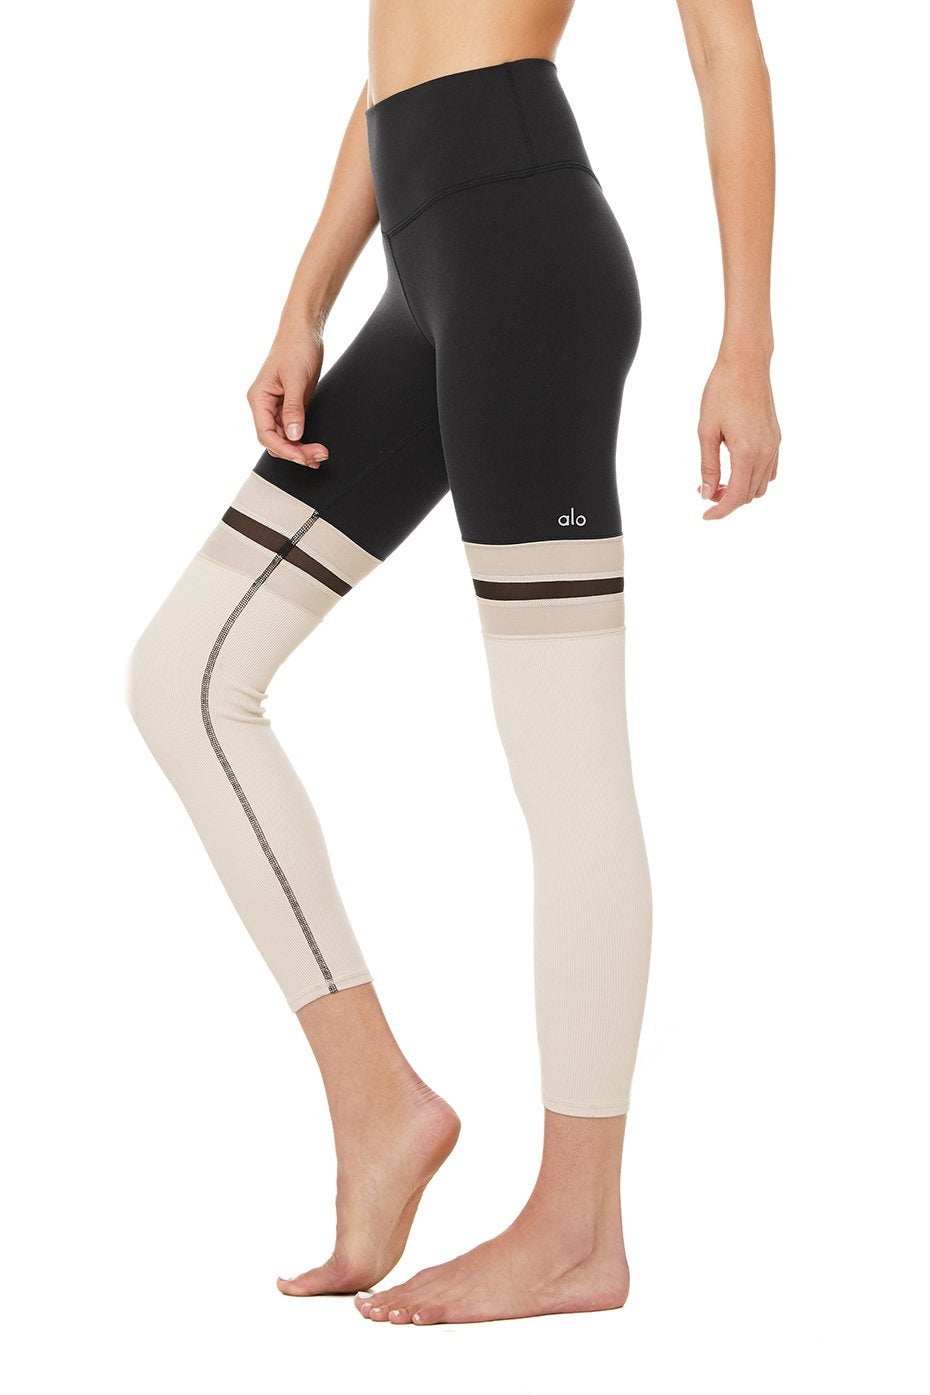 7/8 Player Leggings- Black / Bone